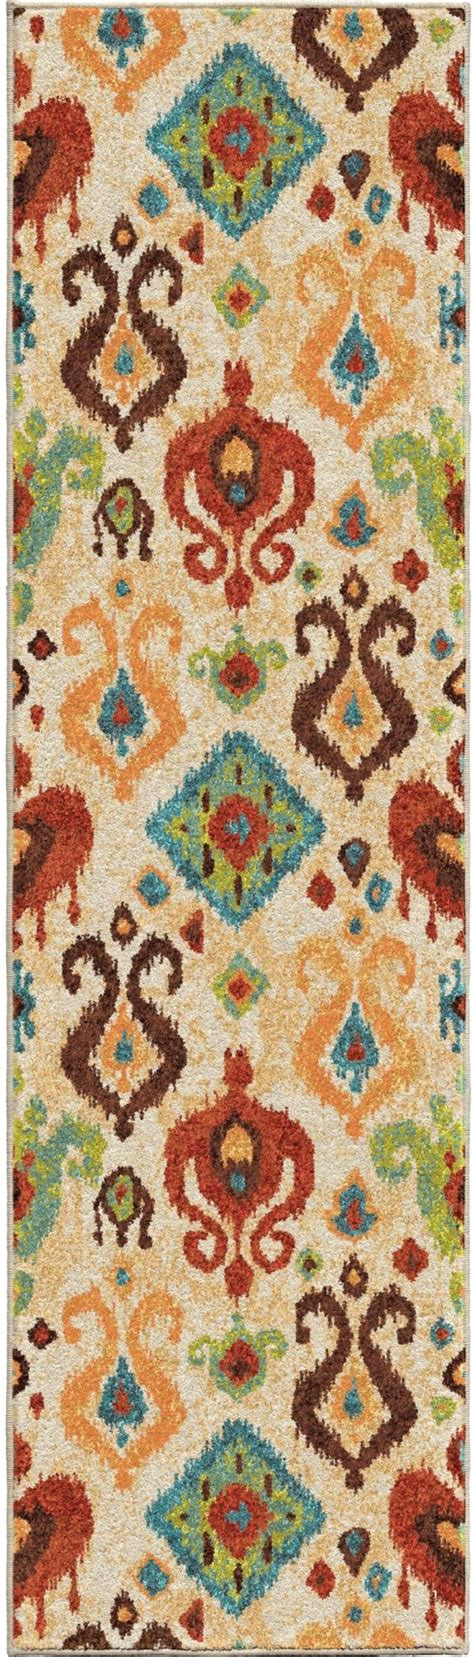 Bright Aztec Rug by Orian Rugs Bright Color Southwest Aztec Jubilee Multi